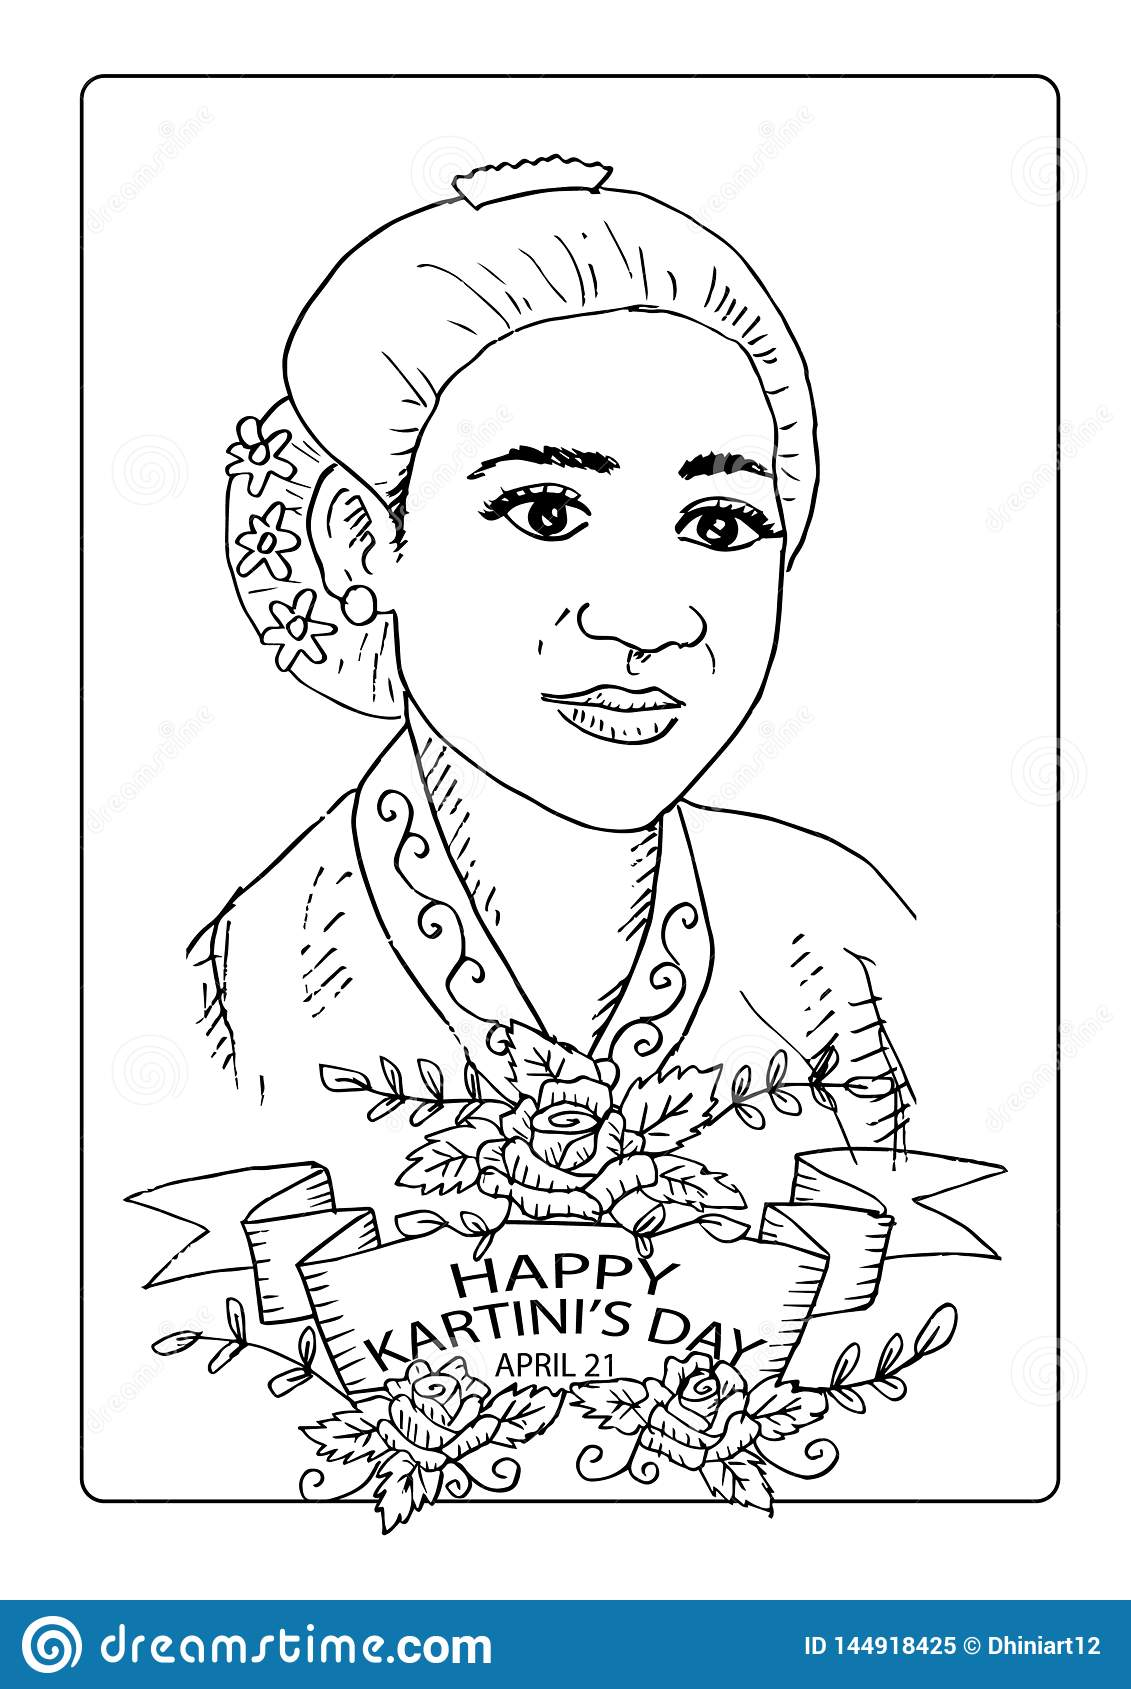 Ra Kartini Vector : kartini, vector, Kartini`s, Coloring, Page., Kartini, Heroes, Women, Human, Right, Indonesia., April., Stock, Vector, Illustration, Emancipation,, Concern:, 144918425